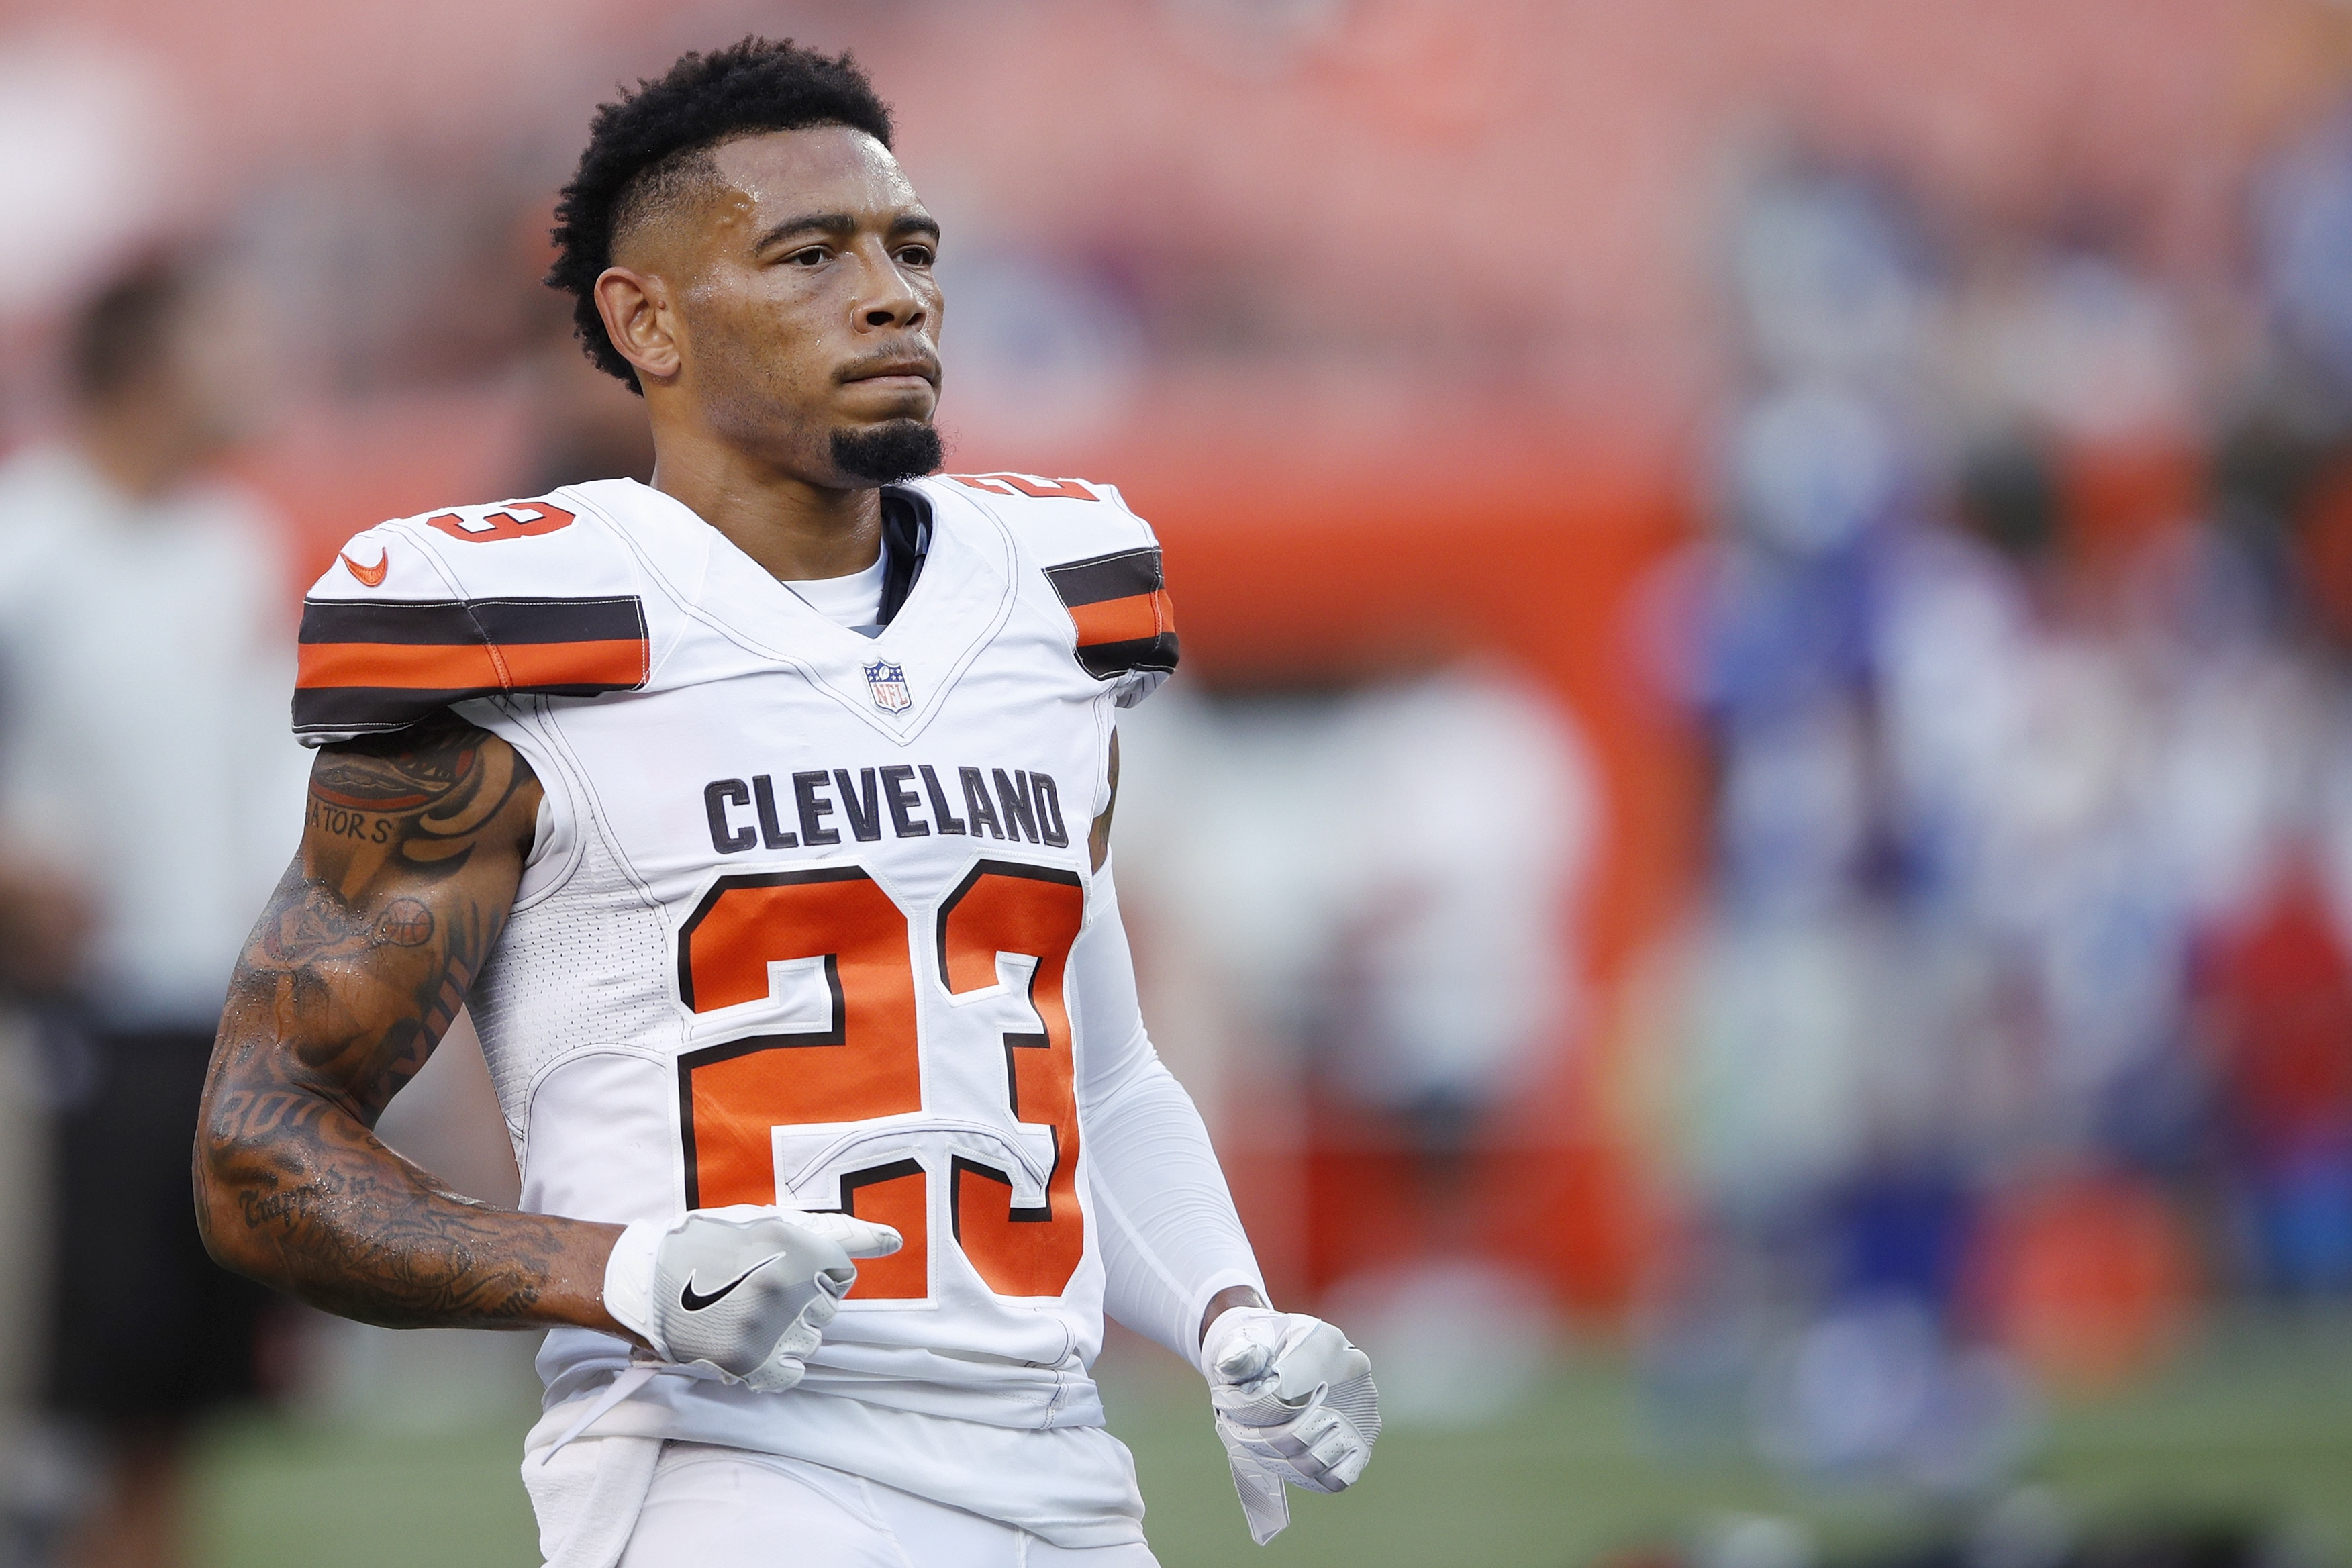 Cleveland Browns cut former Florida CB Joe Haden